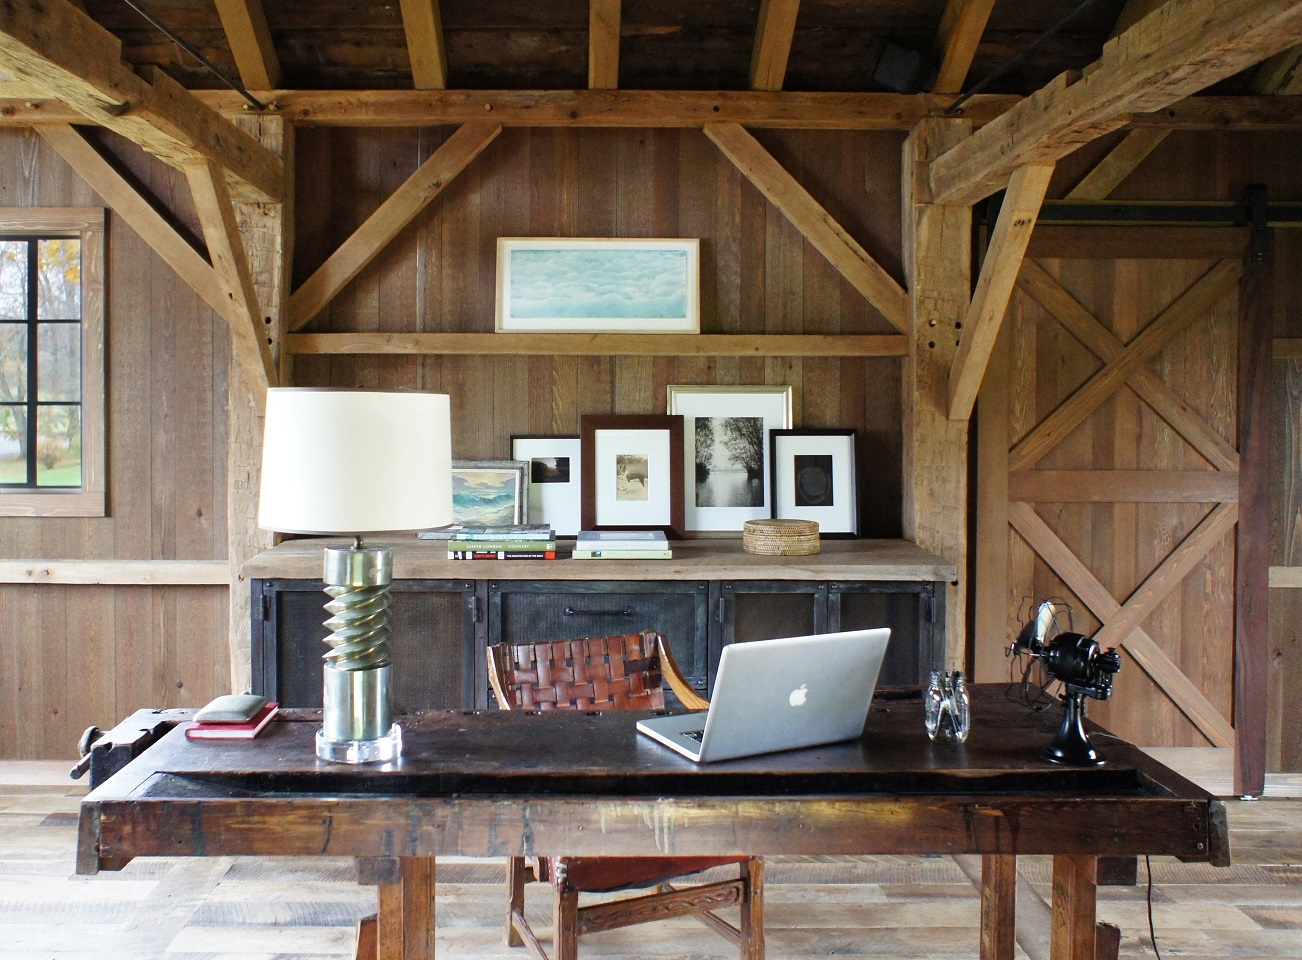 4 Simple Ways to Make You and Your Home Office Healthier